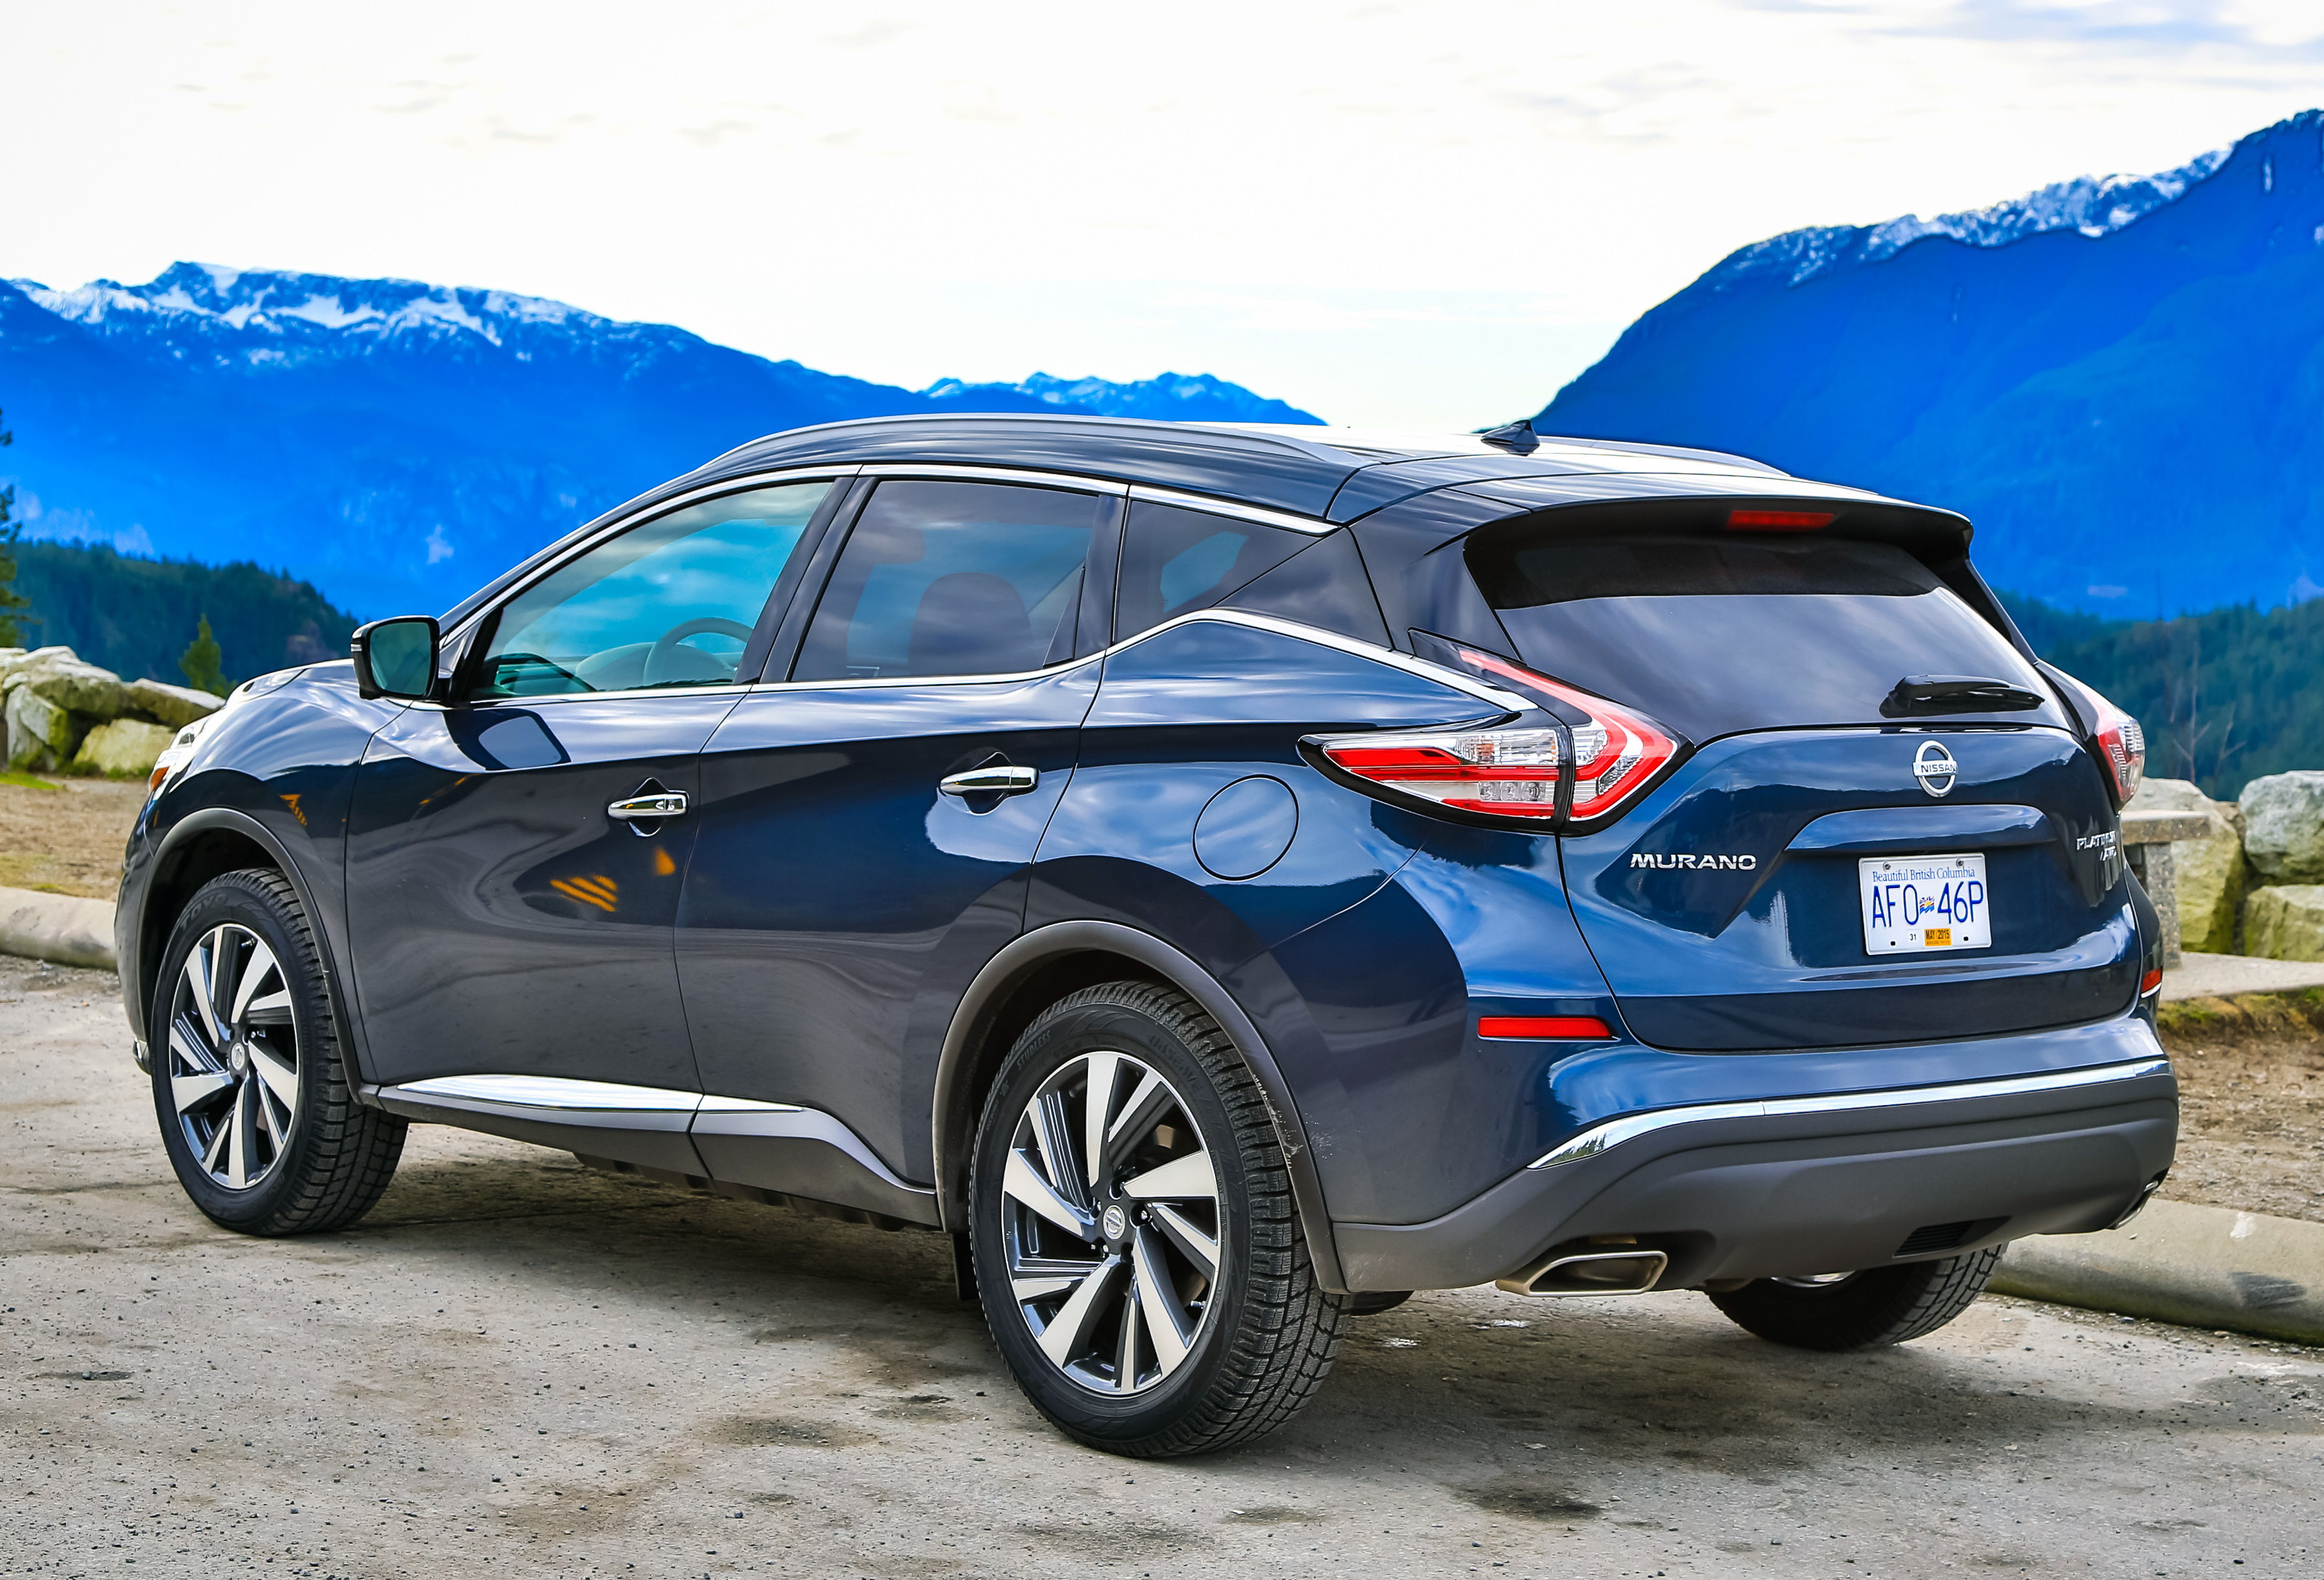 2015 nissan murano ii pictures information and specs auto. Black Bedroom Furniture Sets. Home Design Ideas